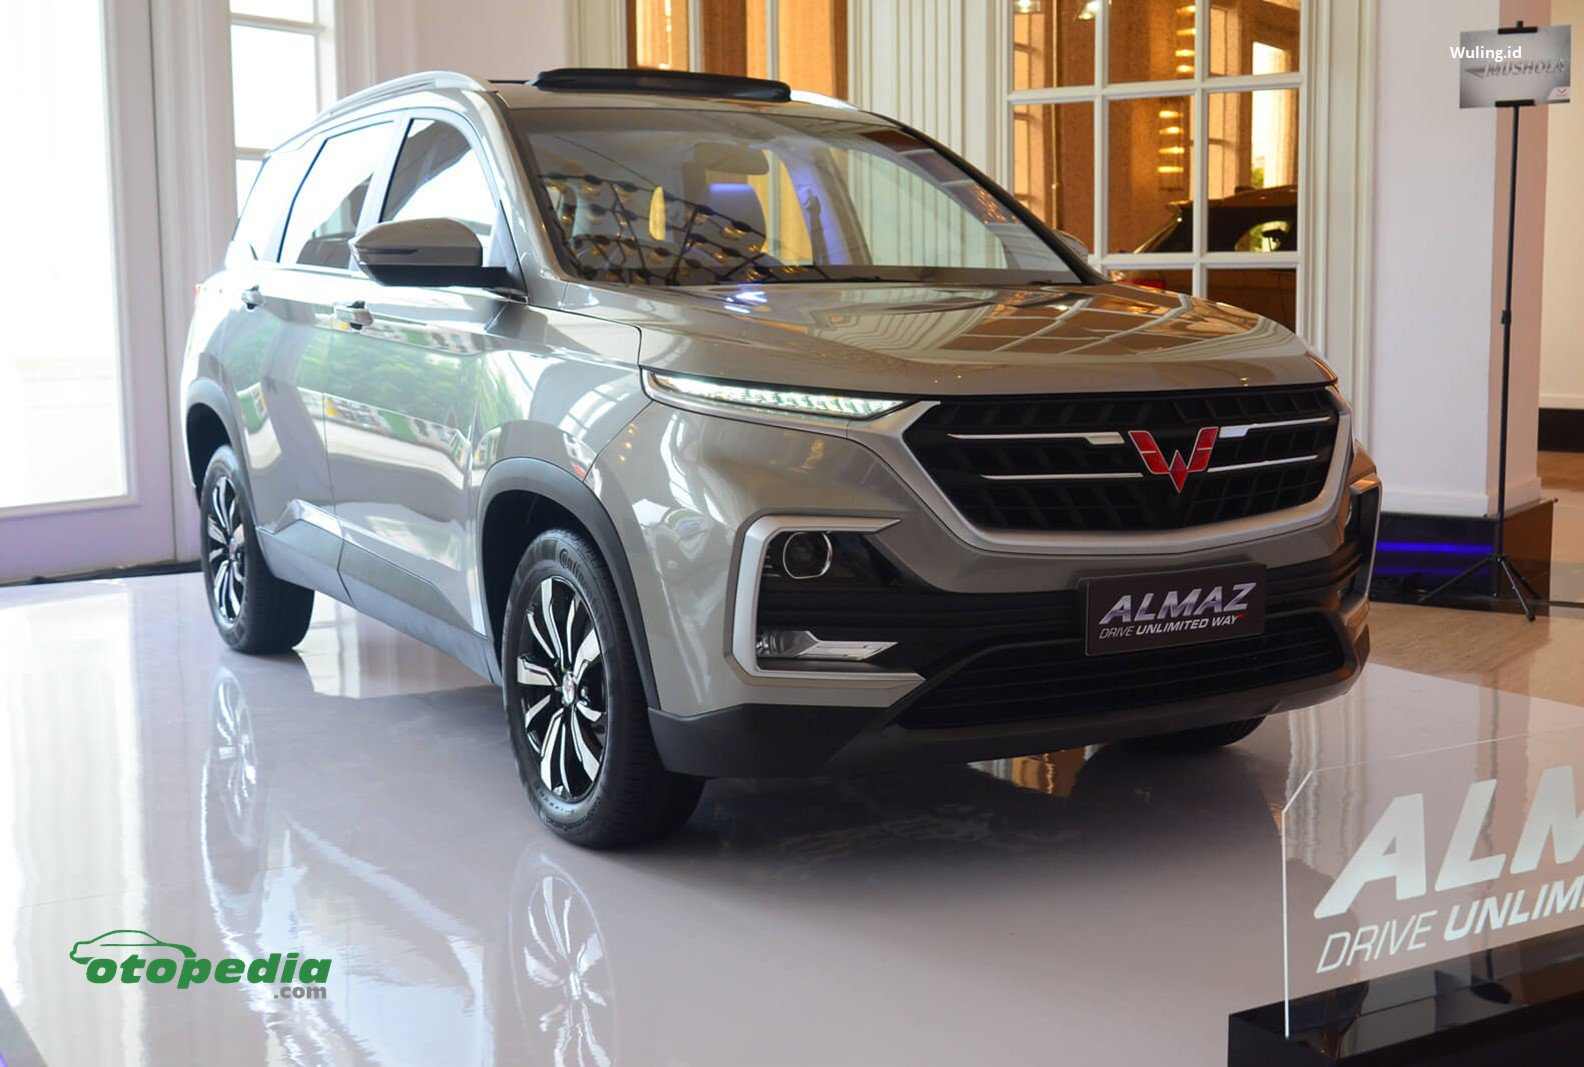 /media/images/Wuling-Almaz.original.jpg